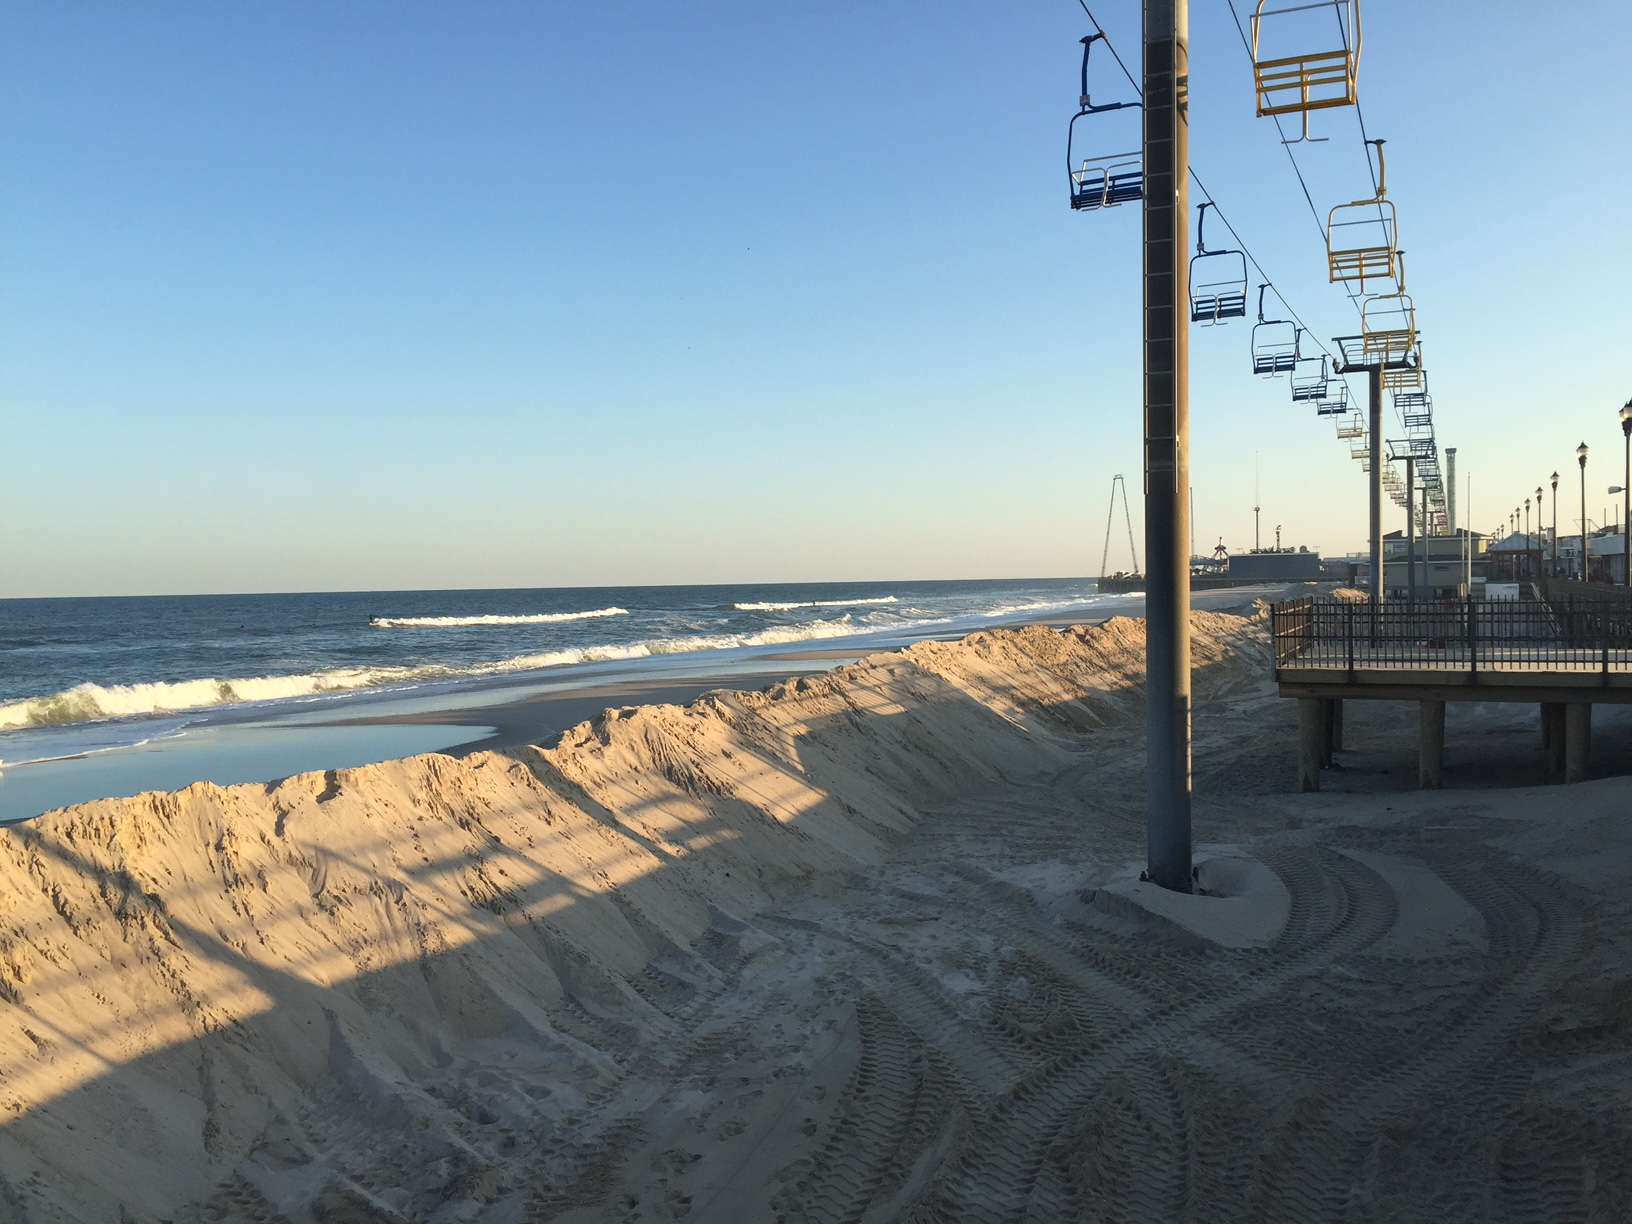 A rebuilt berm in Seaside Heights, Oct. 7, 2015. (Photo: Daniel Nee)